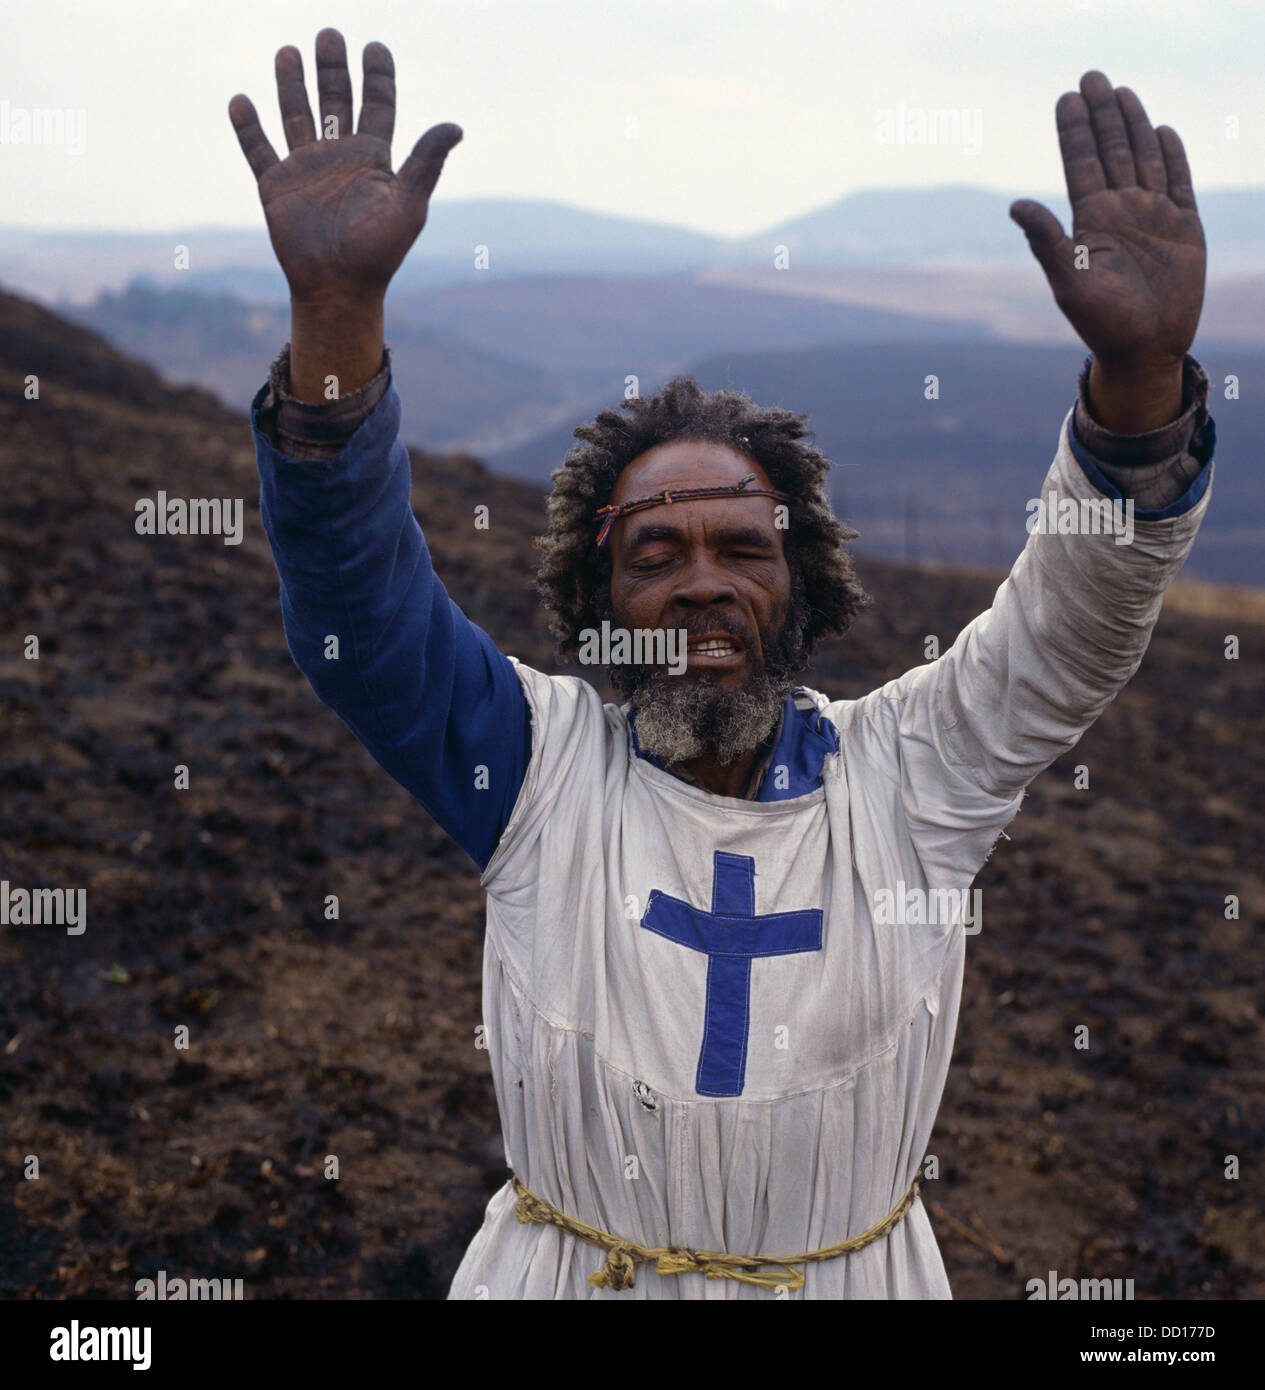 Zionist priest, South Africa - Stock Image